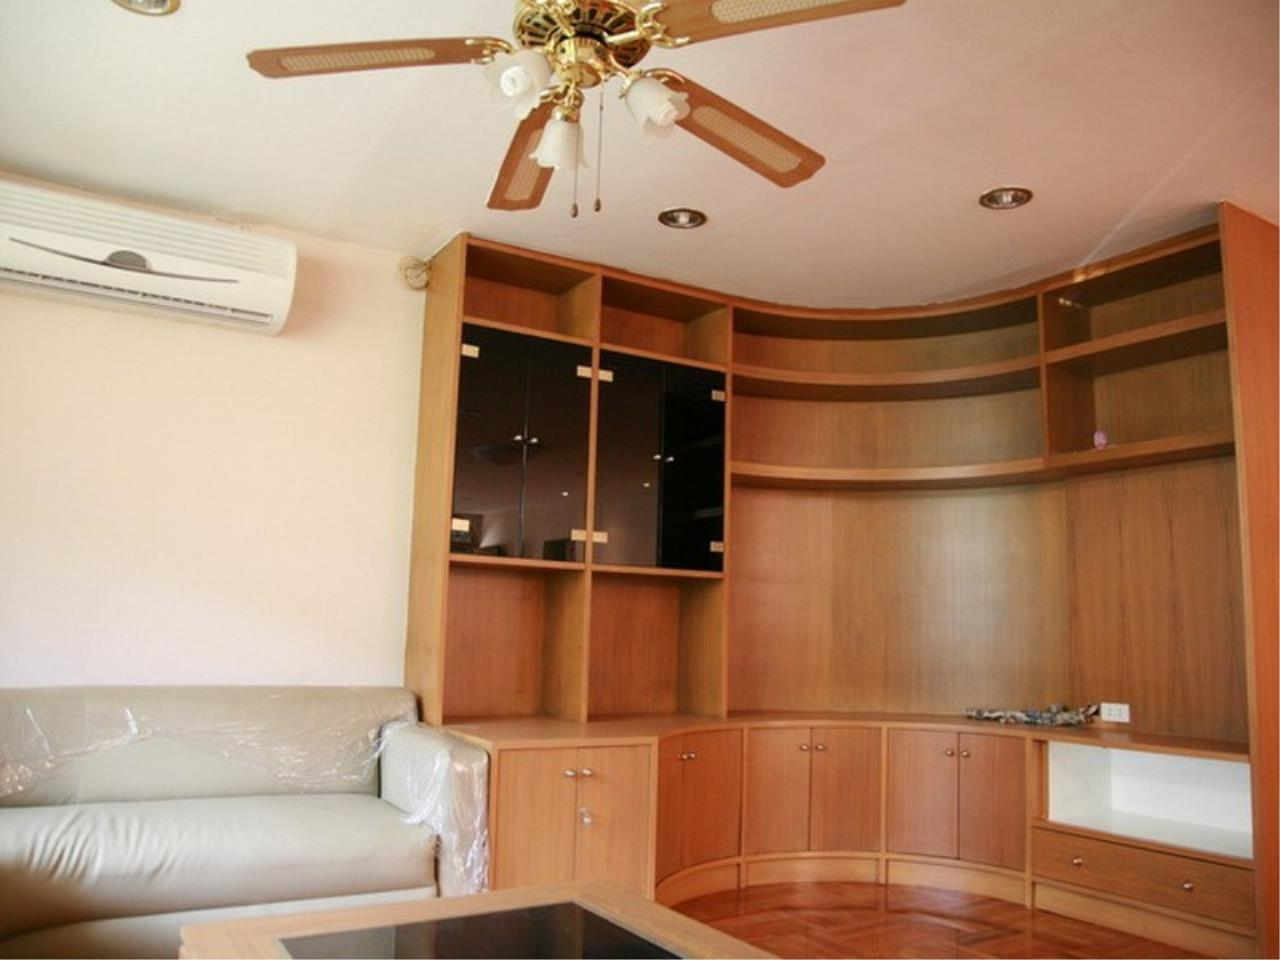 Bangkok Residential Agency's 6 Bed Single House For Rent in Phrom Phong BR7788SH 3